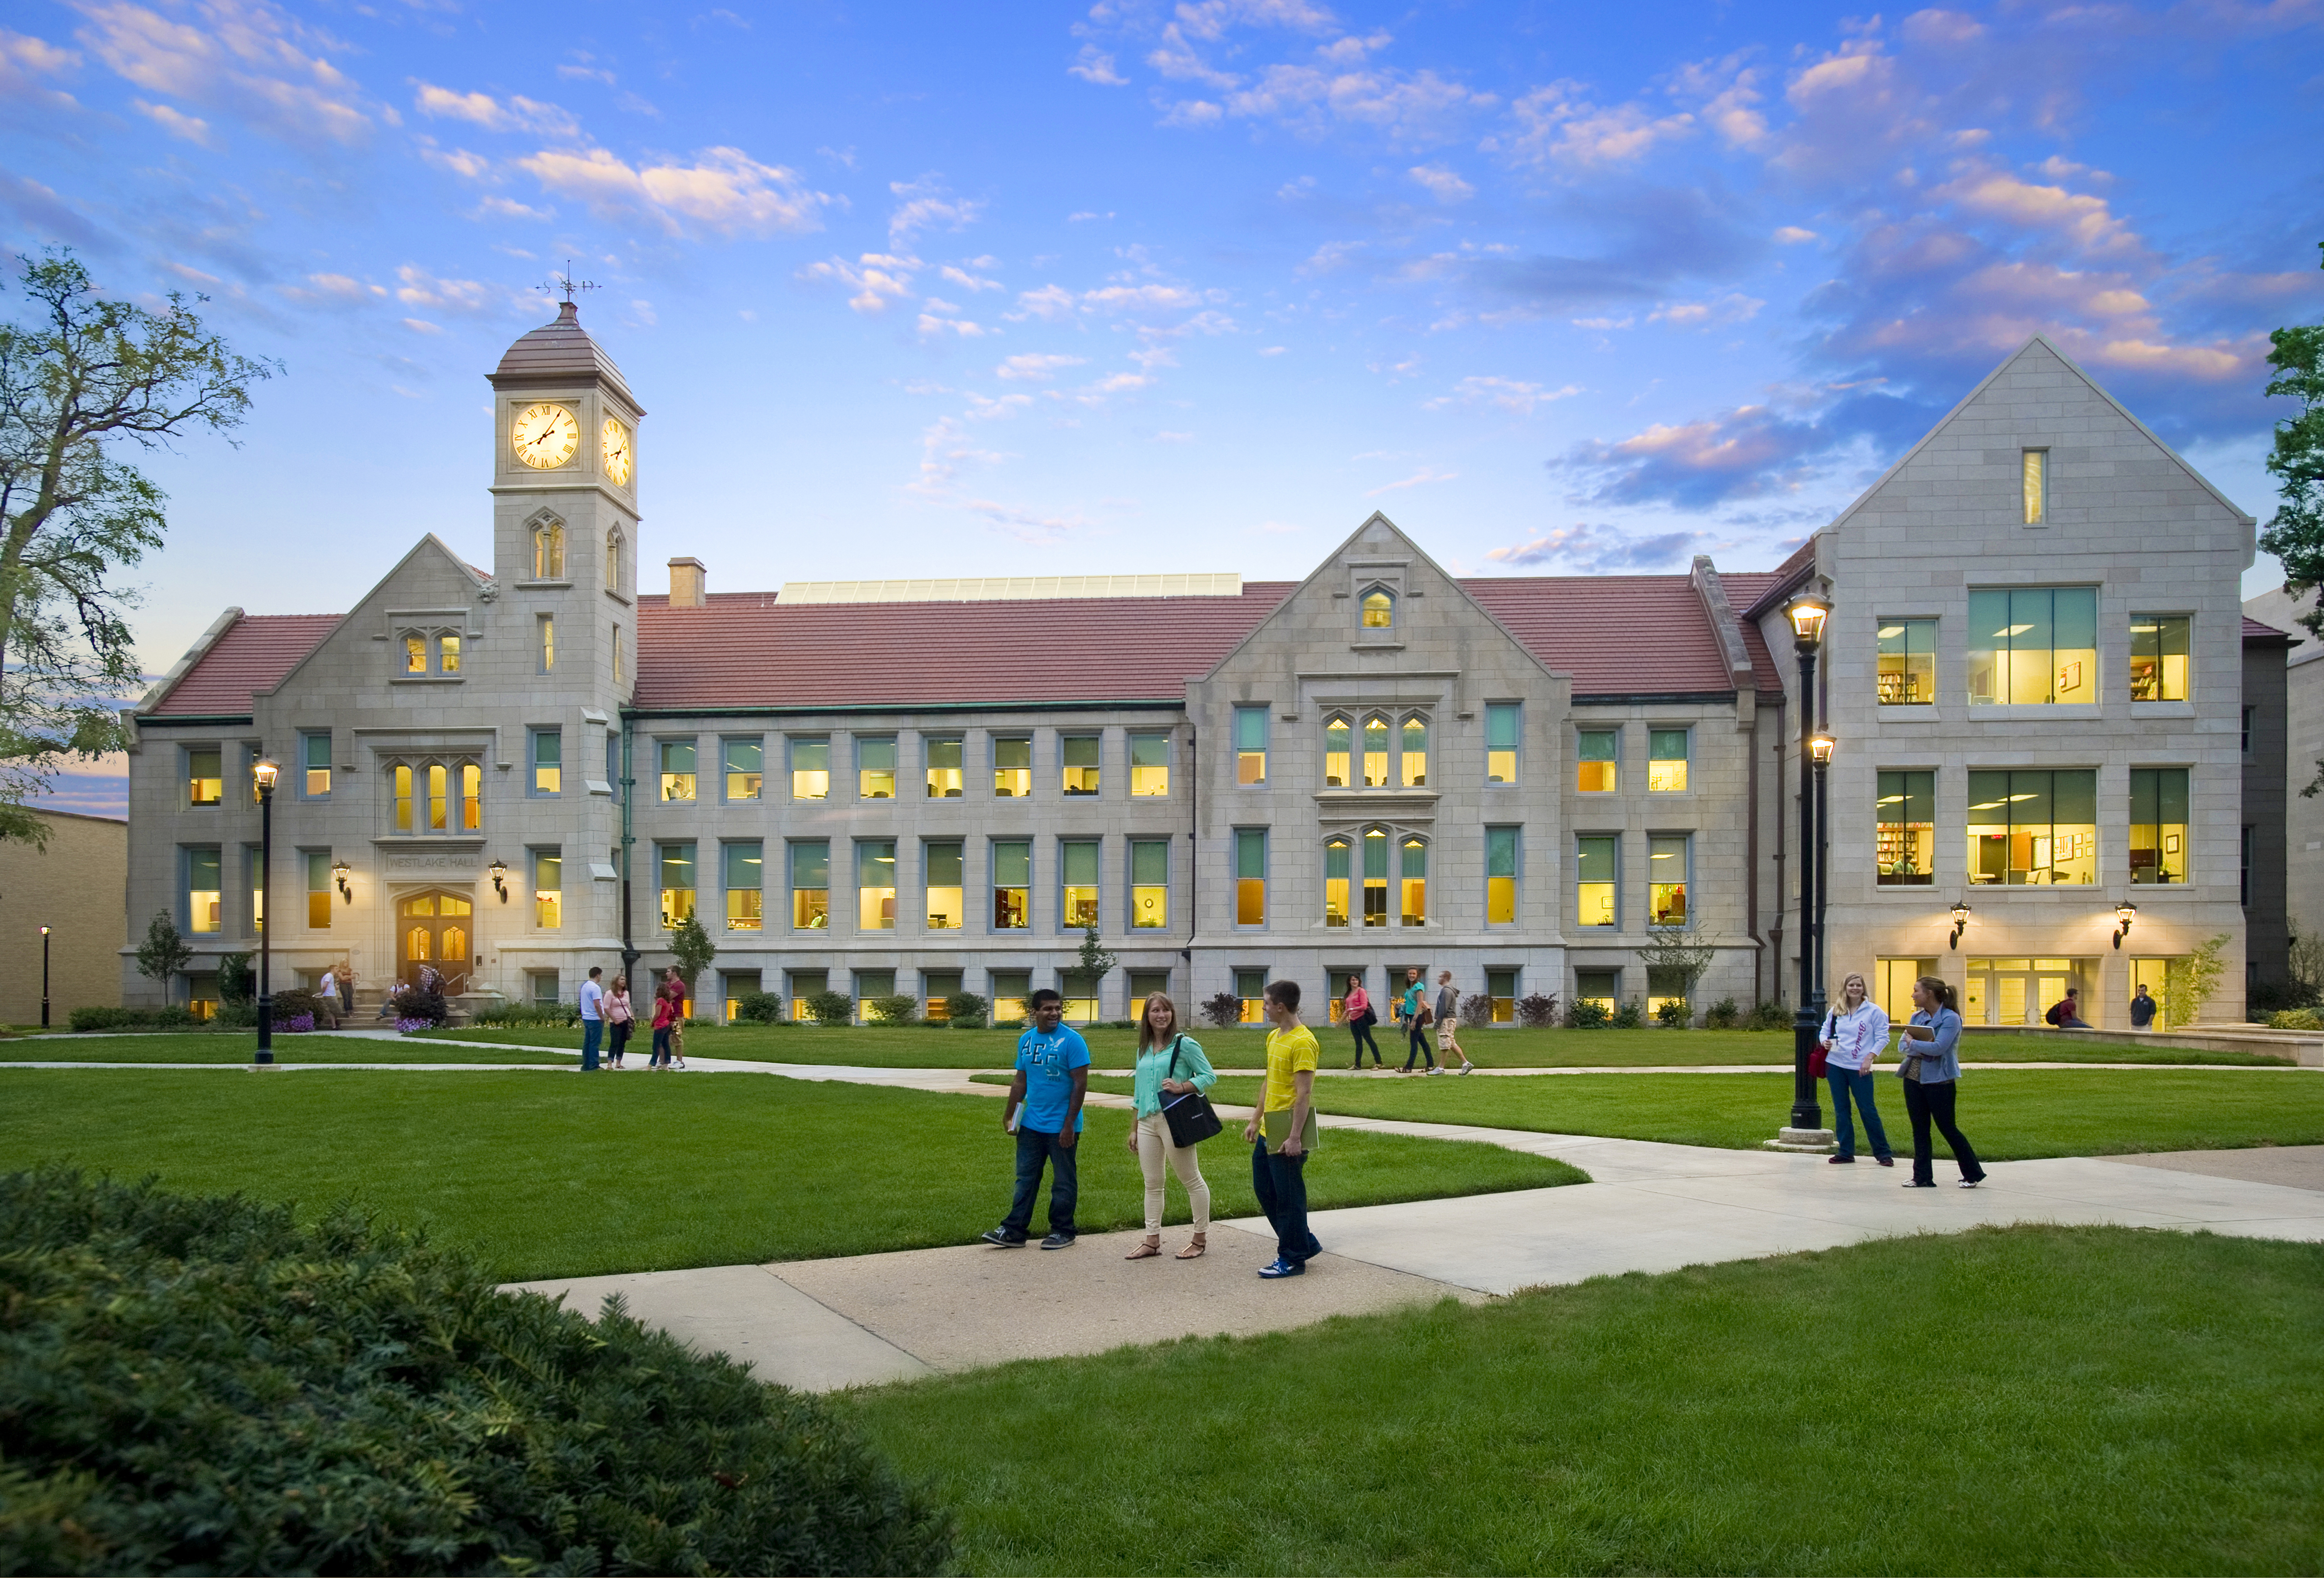 Bradley University is a private university in Peoria Illinois Founded in 1897 Bradley University currently enrolls 5400 students who are pursuing degrees in more